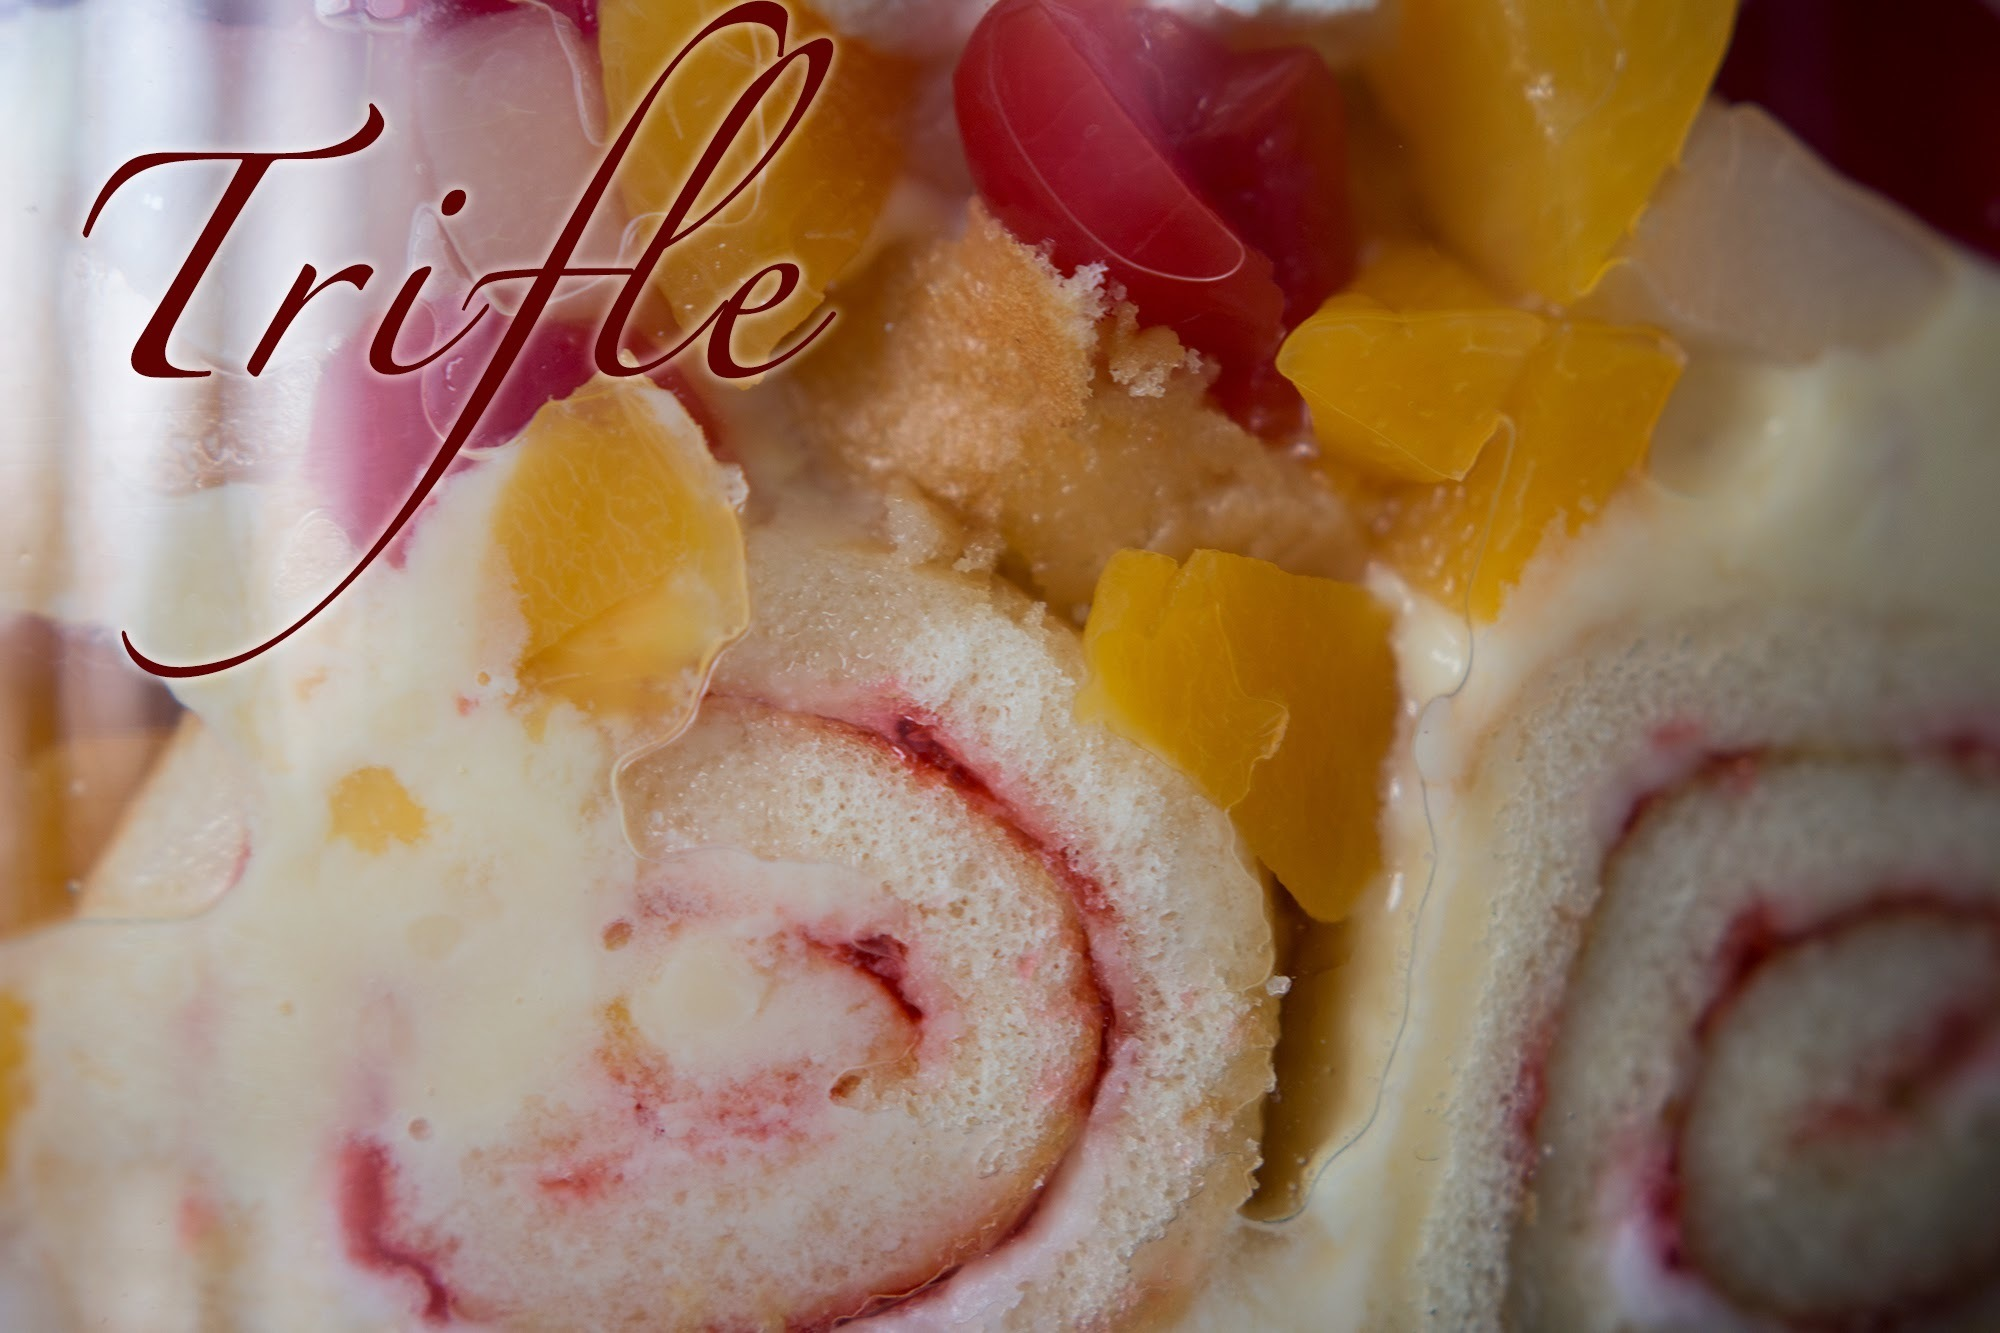 Trifle - Cake, Custard, Jelly cubes and fruit